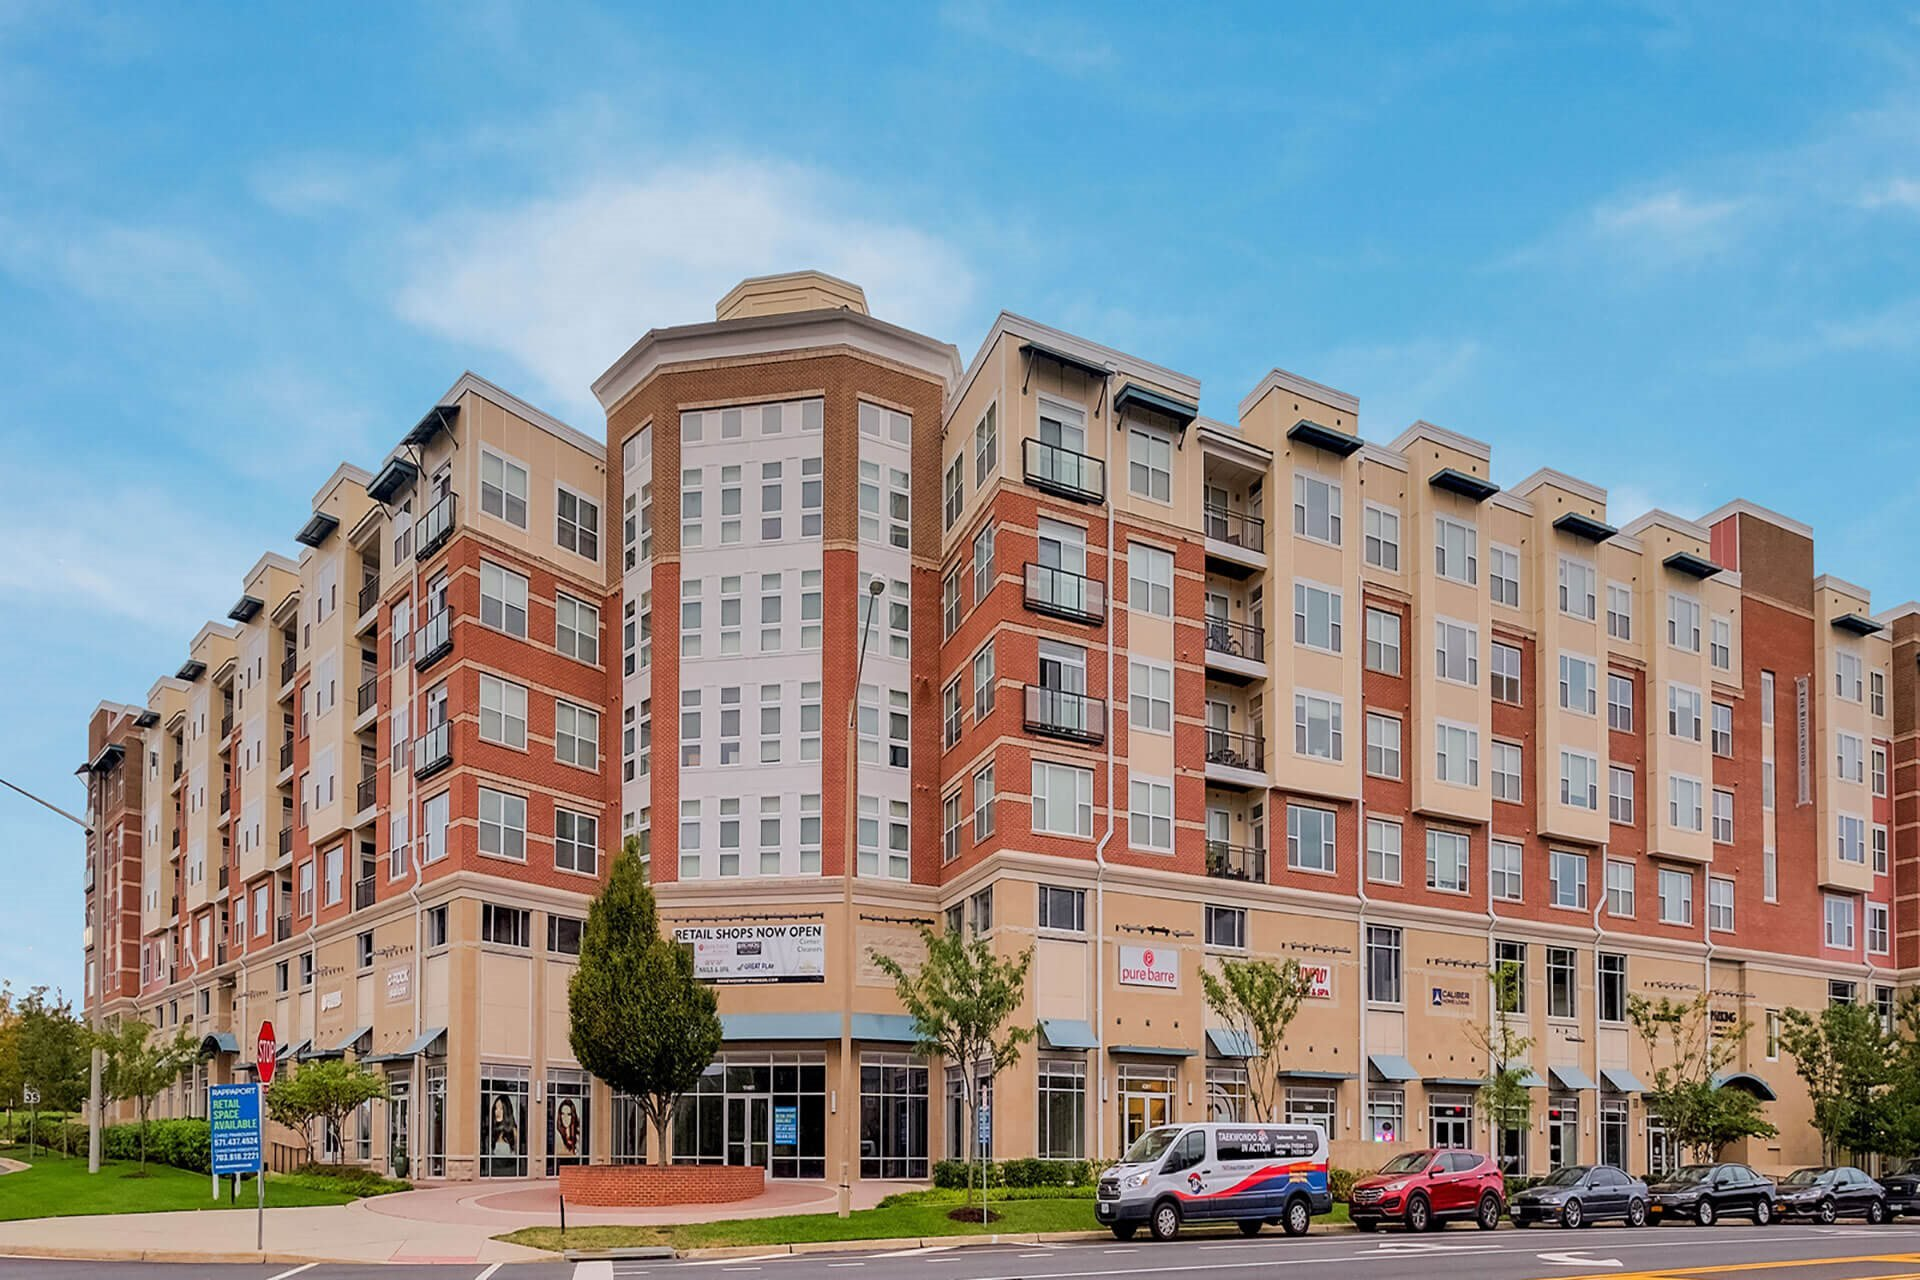 On-site management at The Ridgewood by Windsor, Virginia, 22030